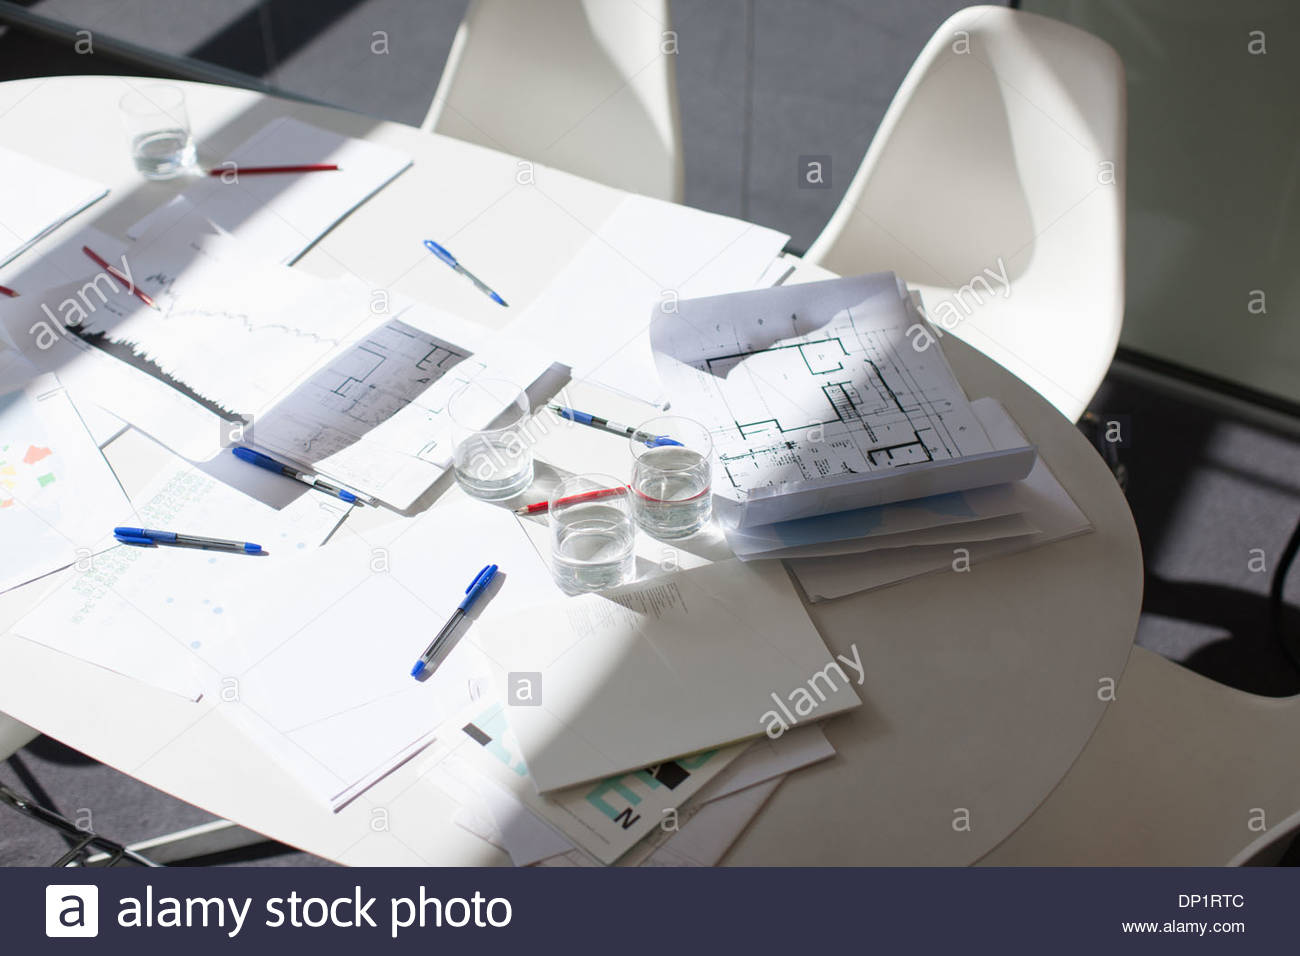 Directly above paperwork on conference table - Stock Image